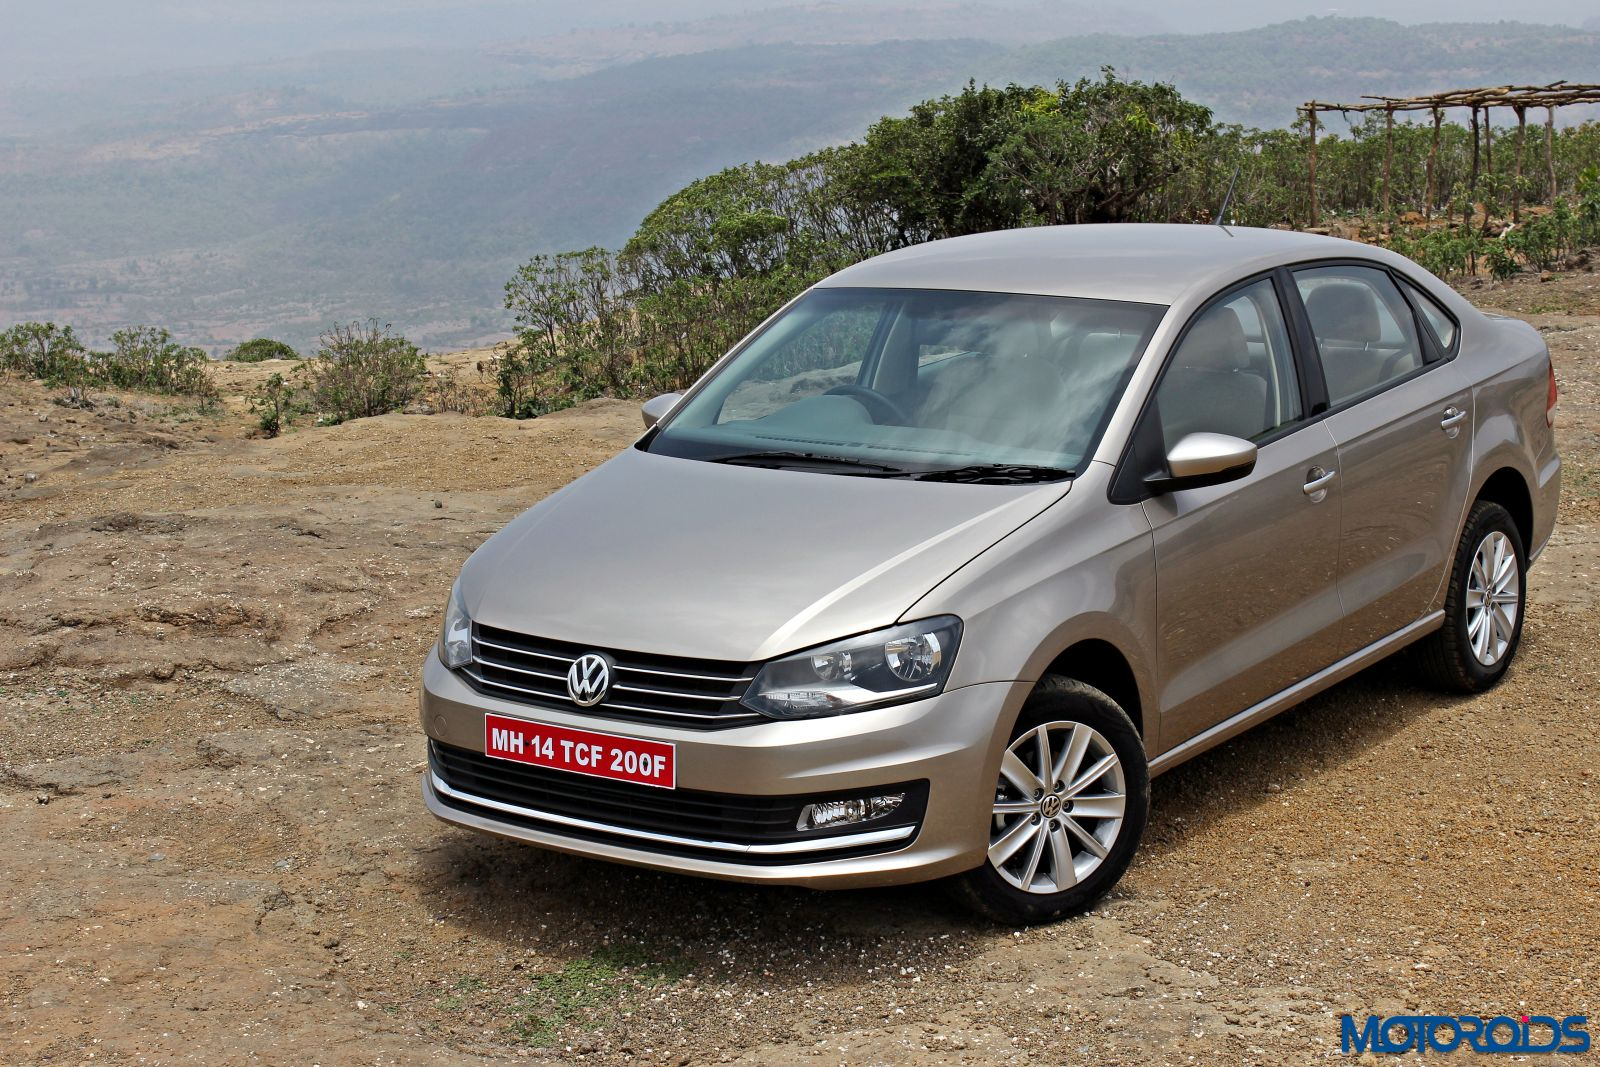 New 2015 Volkswagen Vento 1 5 Diesel Facelift Review